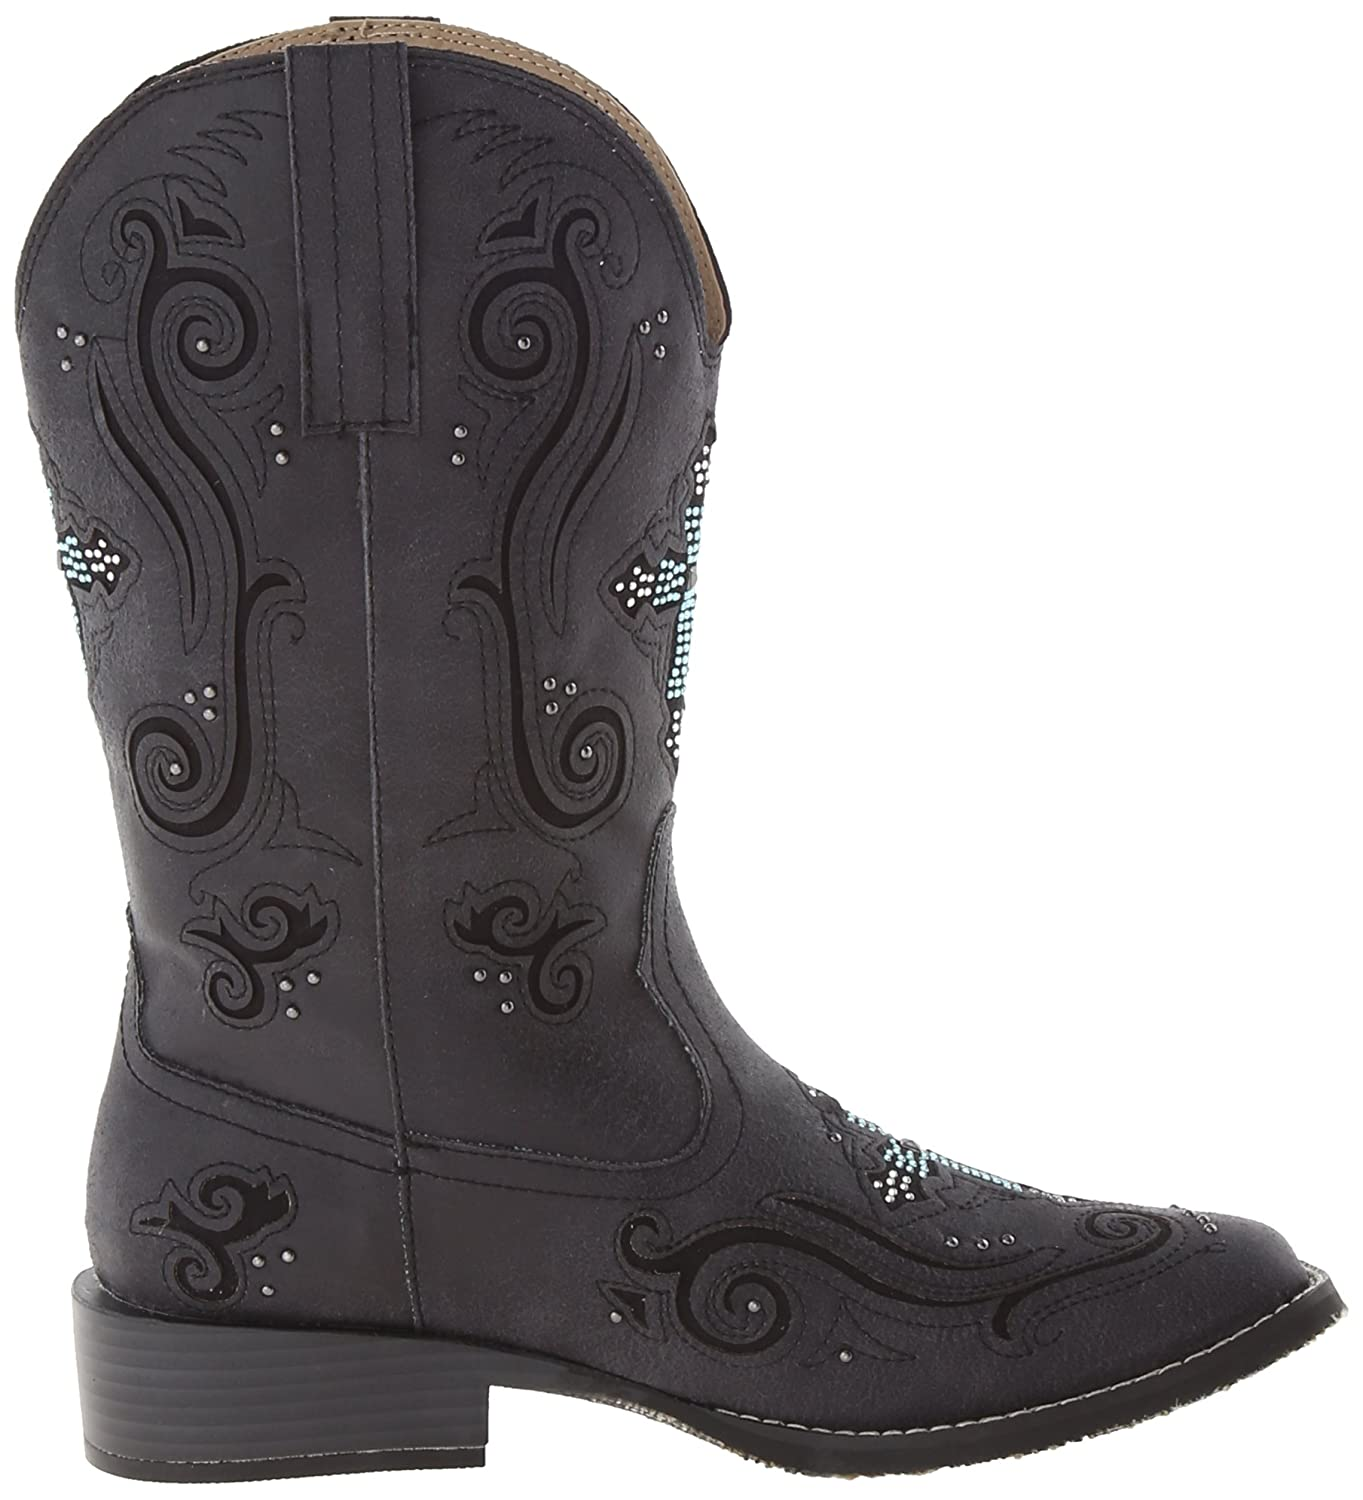 Roper Boot Women's Crossed Out Western Boot Roper B00JE8XJ0W 5 B(M) US|Black 1485f4